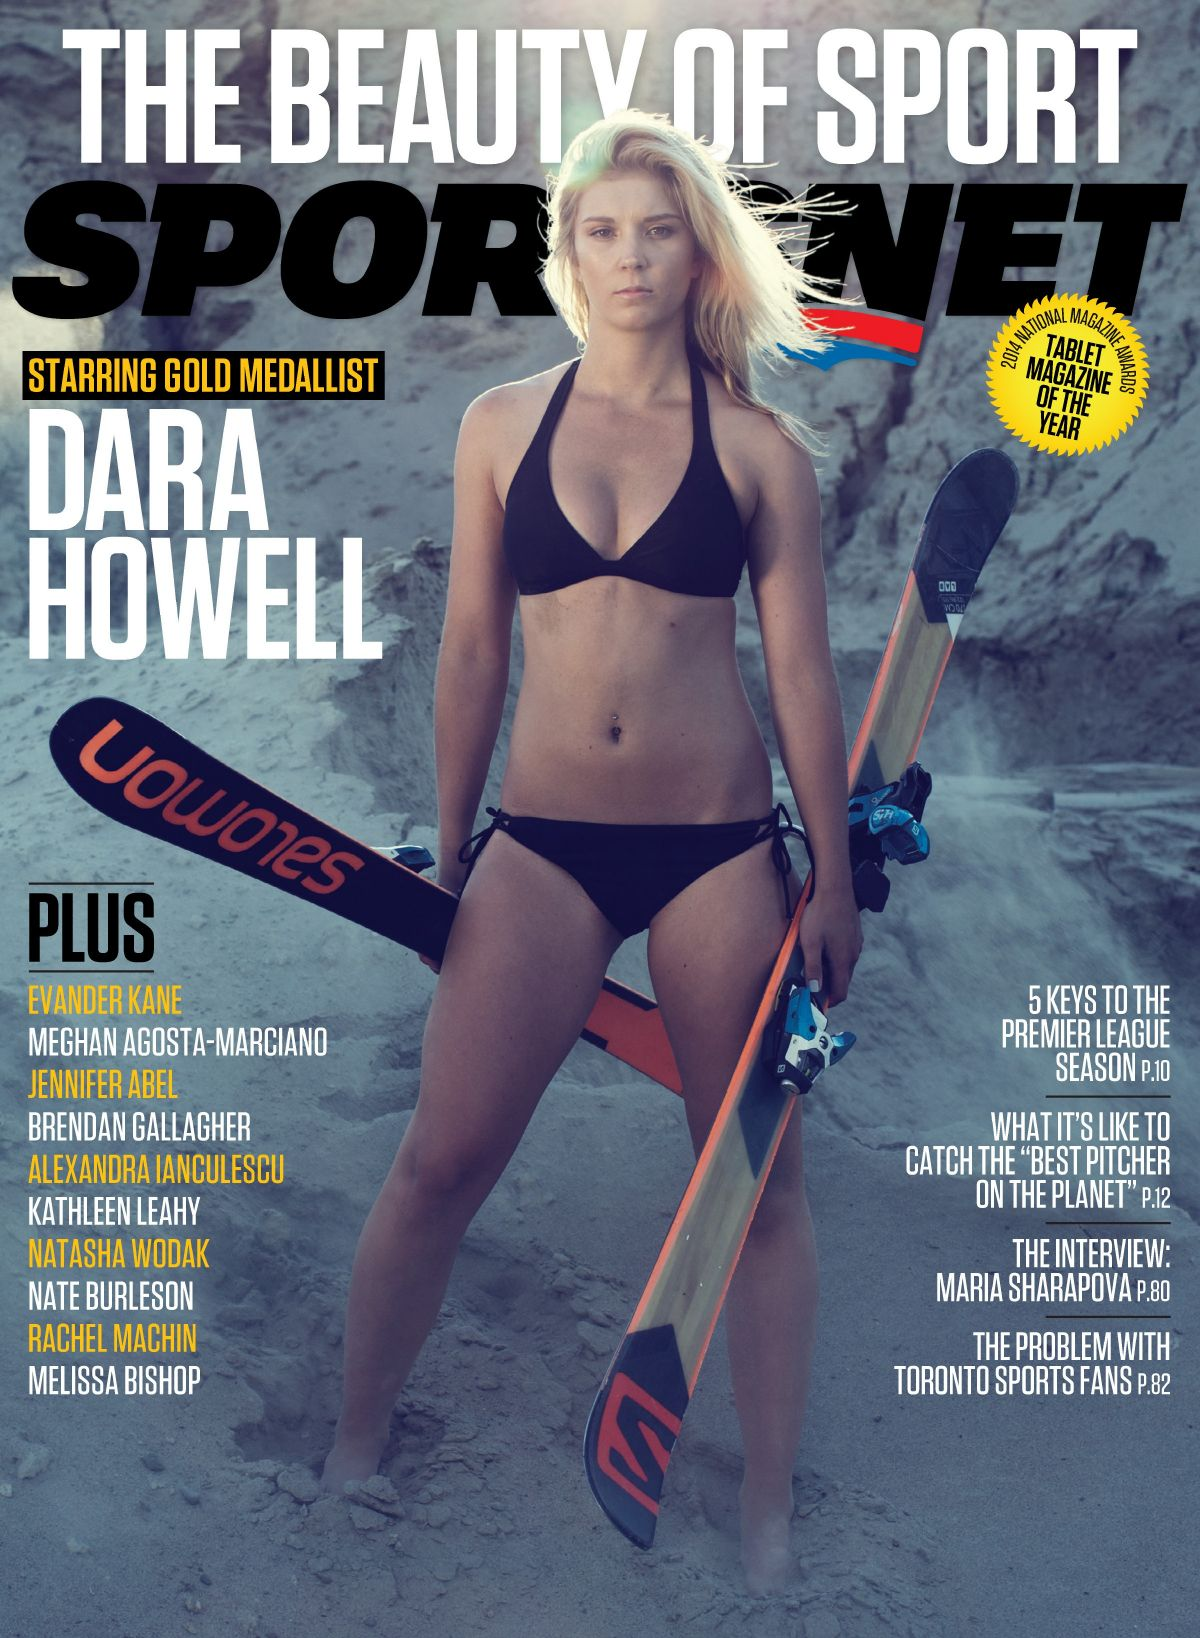 DARA HOWELL in Sportsnet Magazine, August 2014 Issue